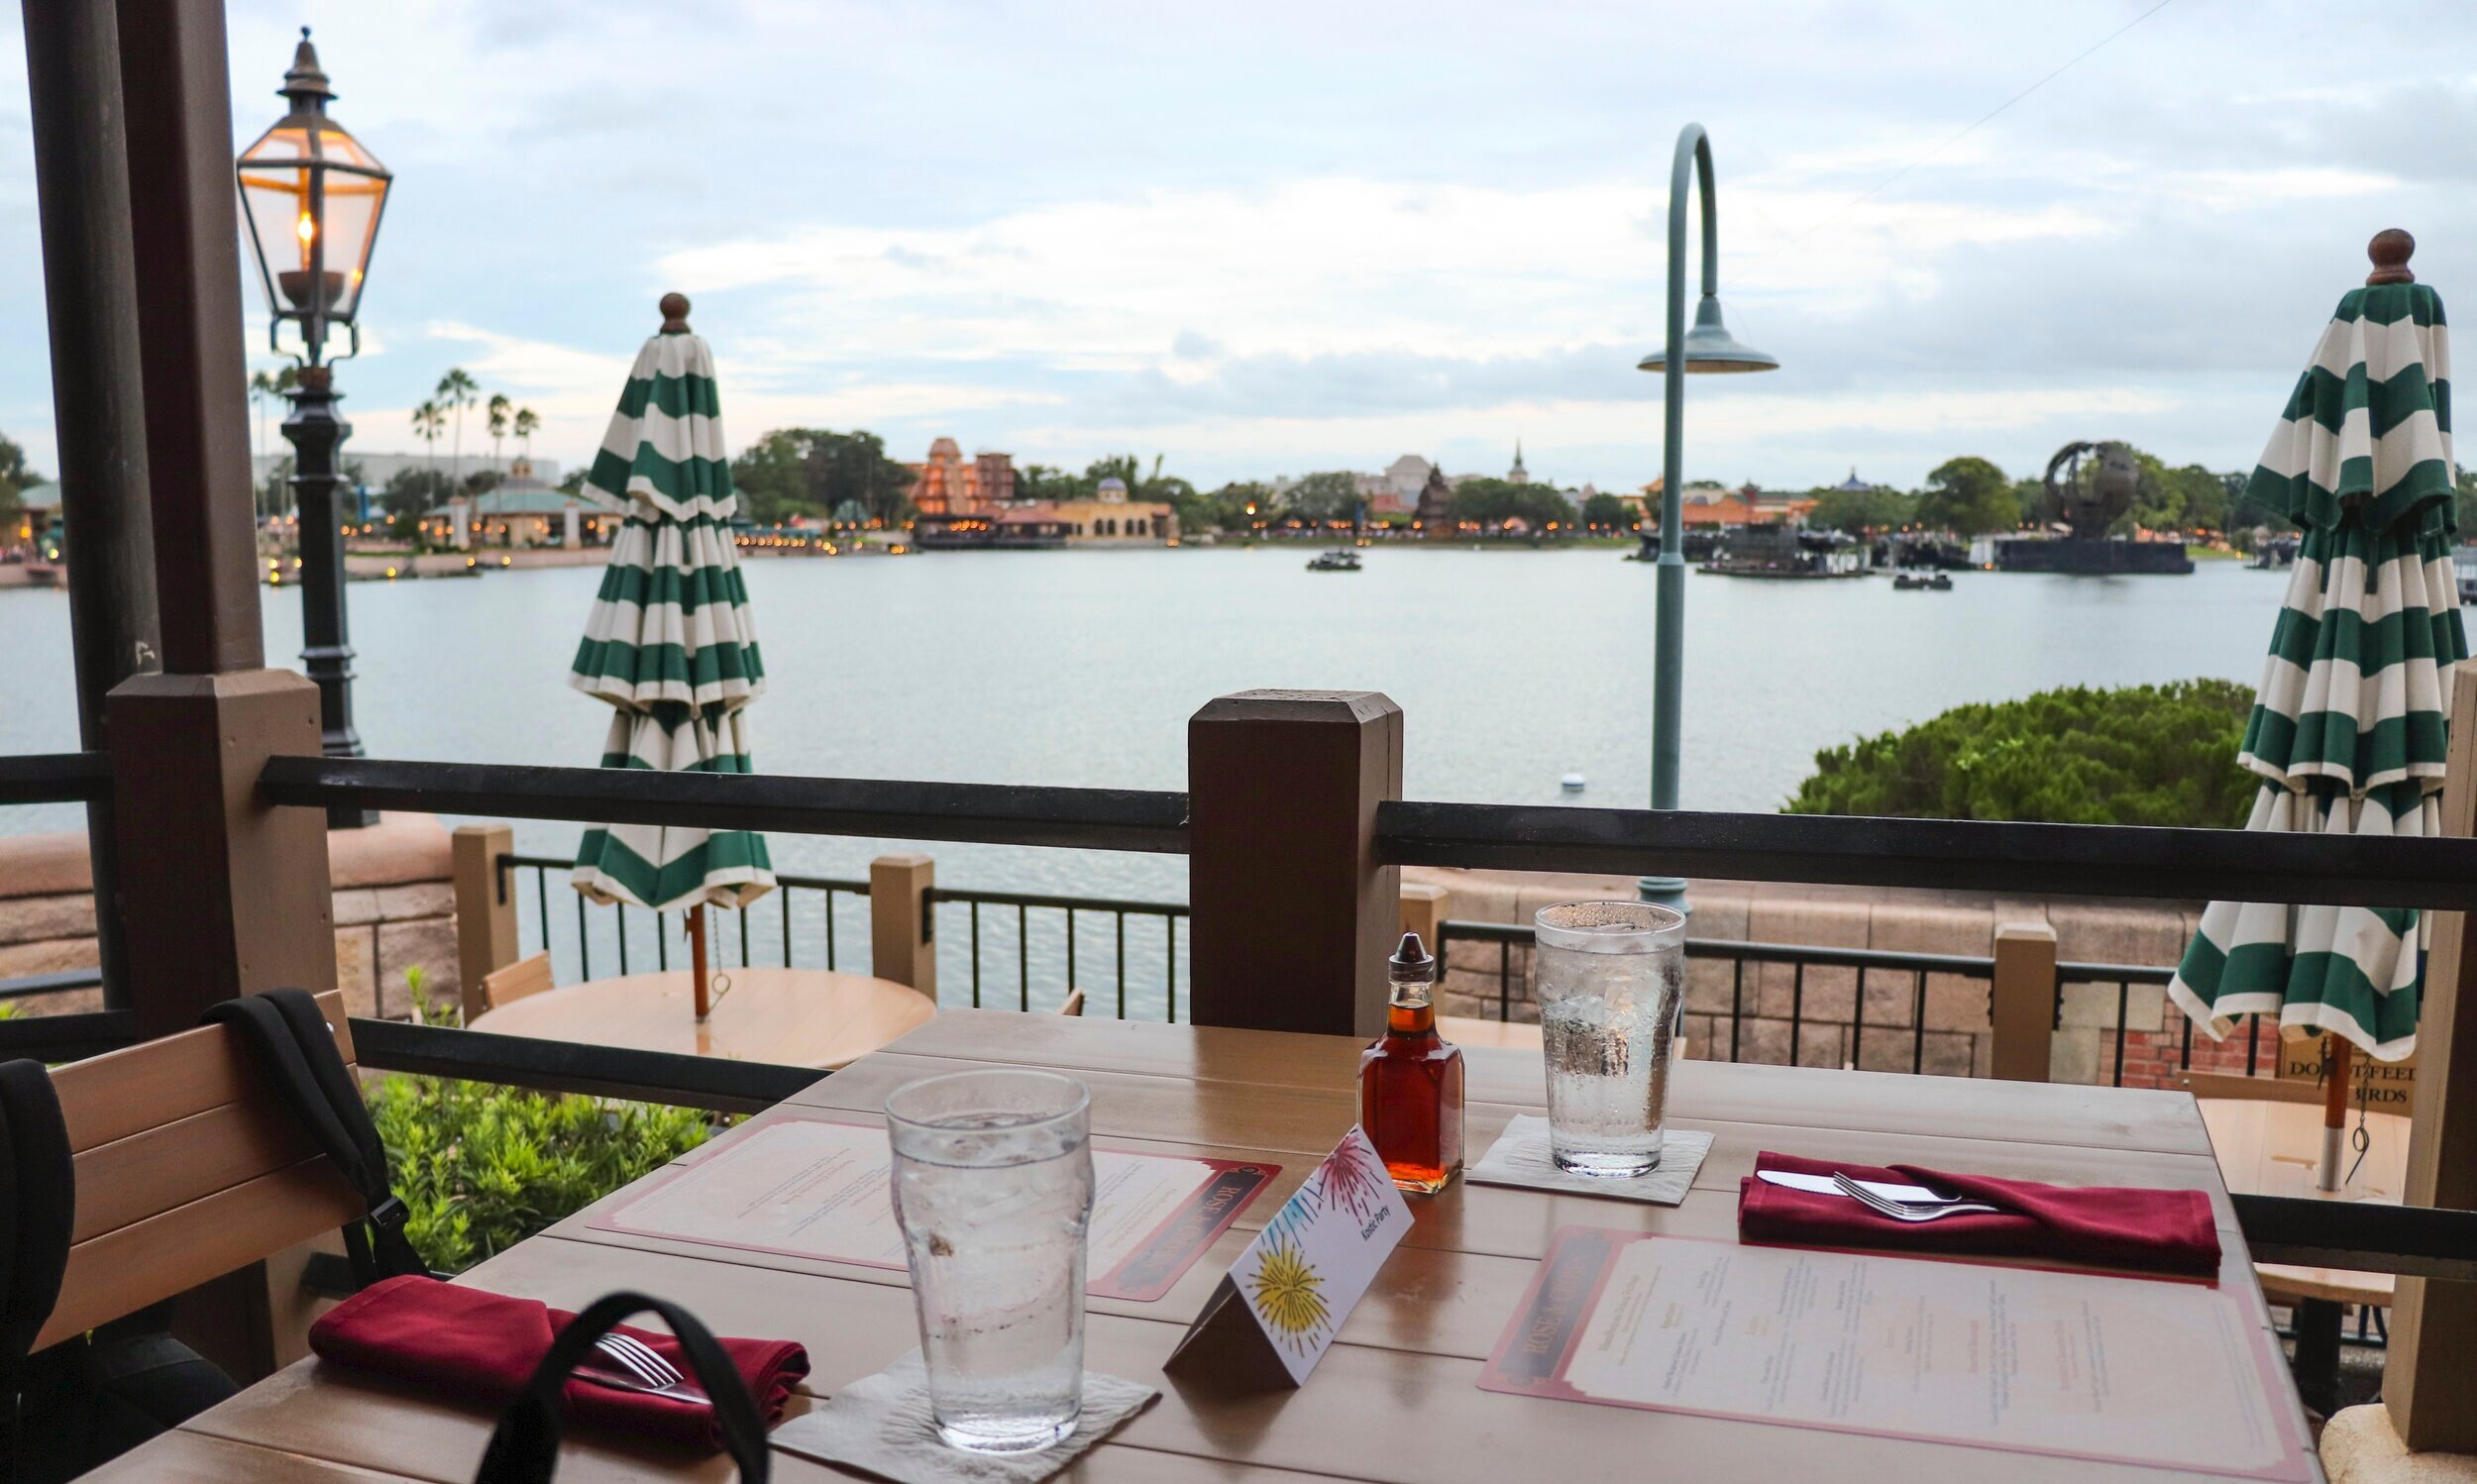 Our table for two with a great view.